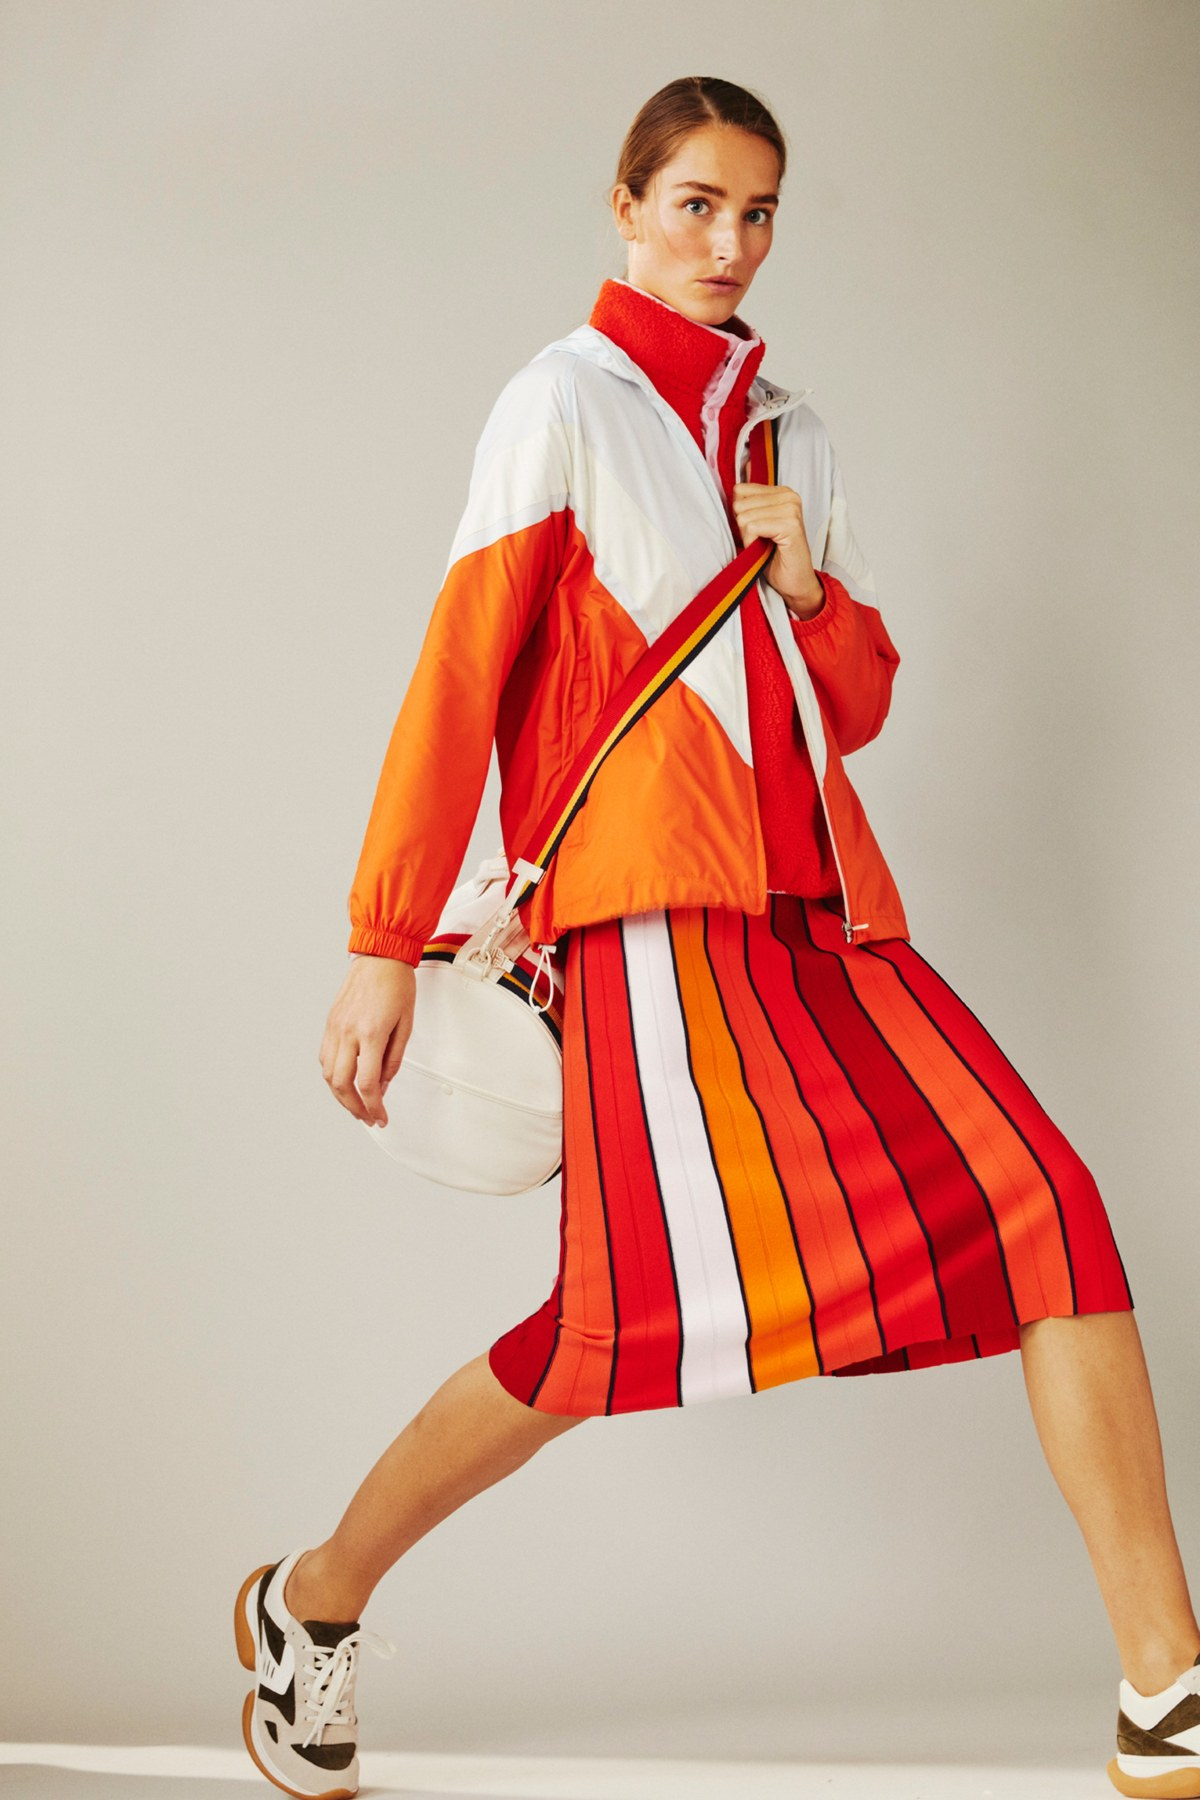 Tory Sport Spring Ready -To -Wear-  2019